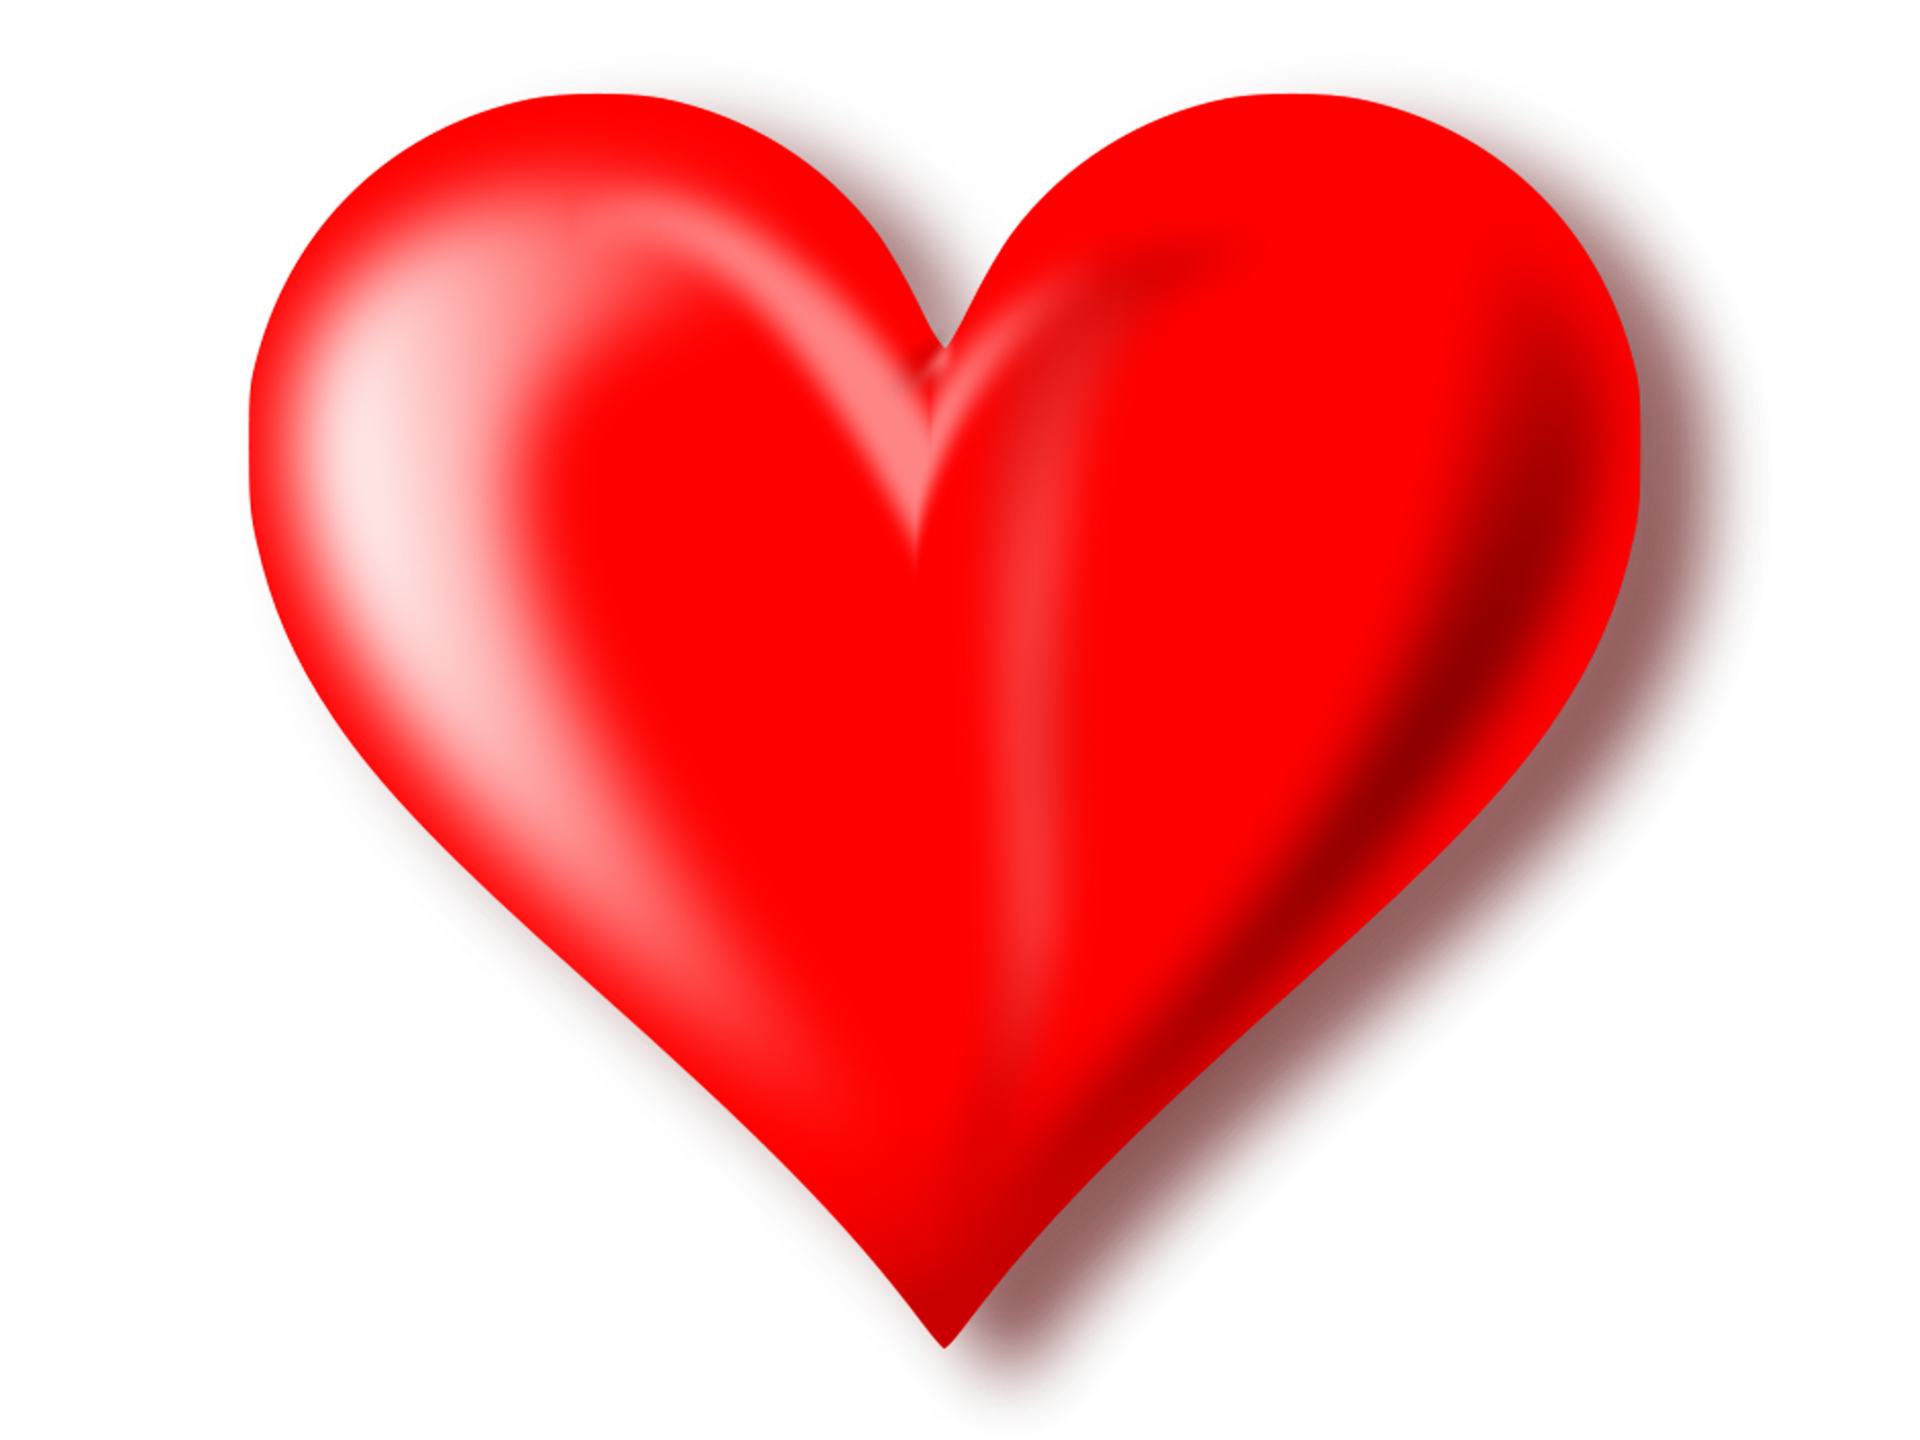 3D Red Heart Transparent Background - Heart PNG HD Transparent Background